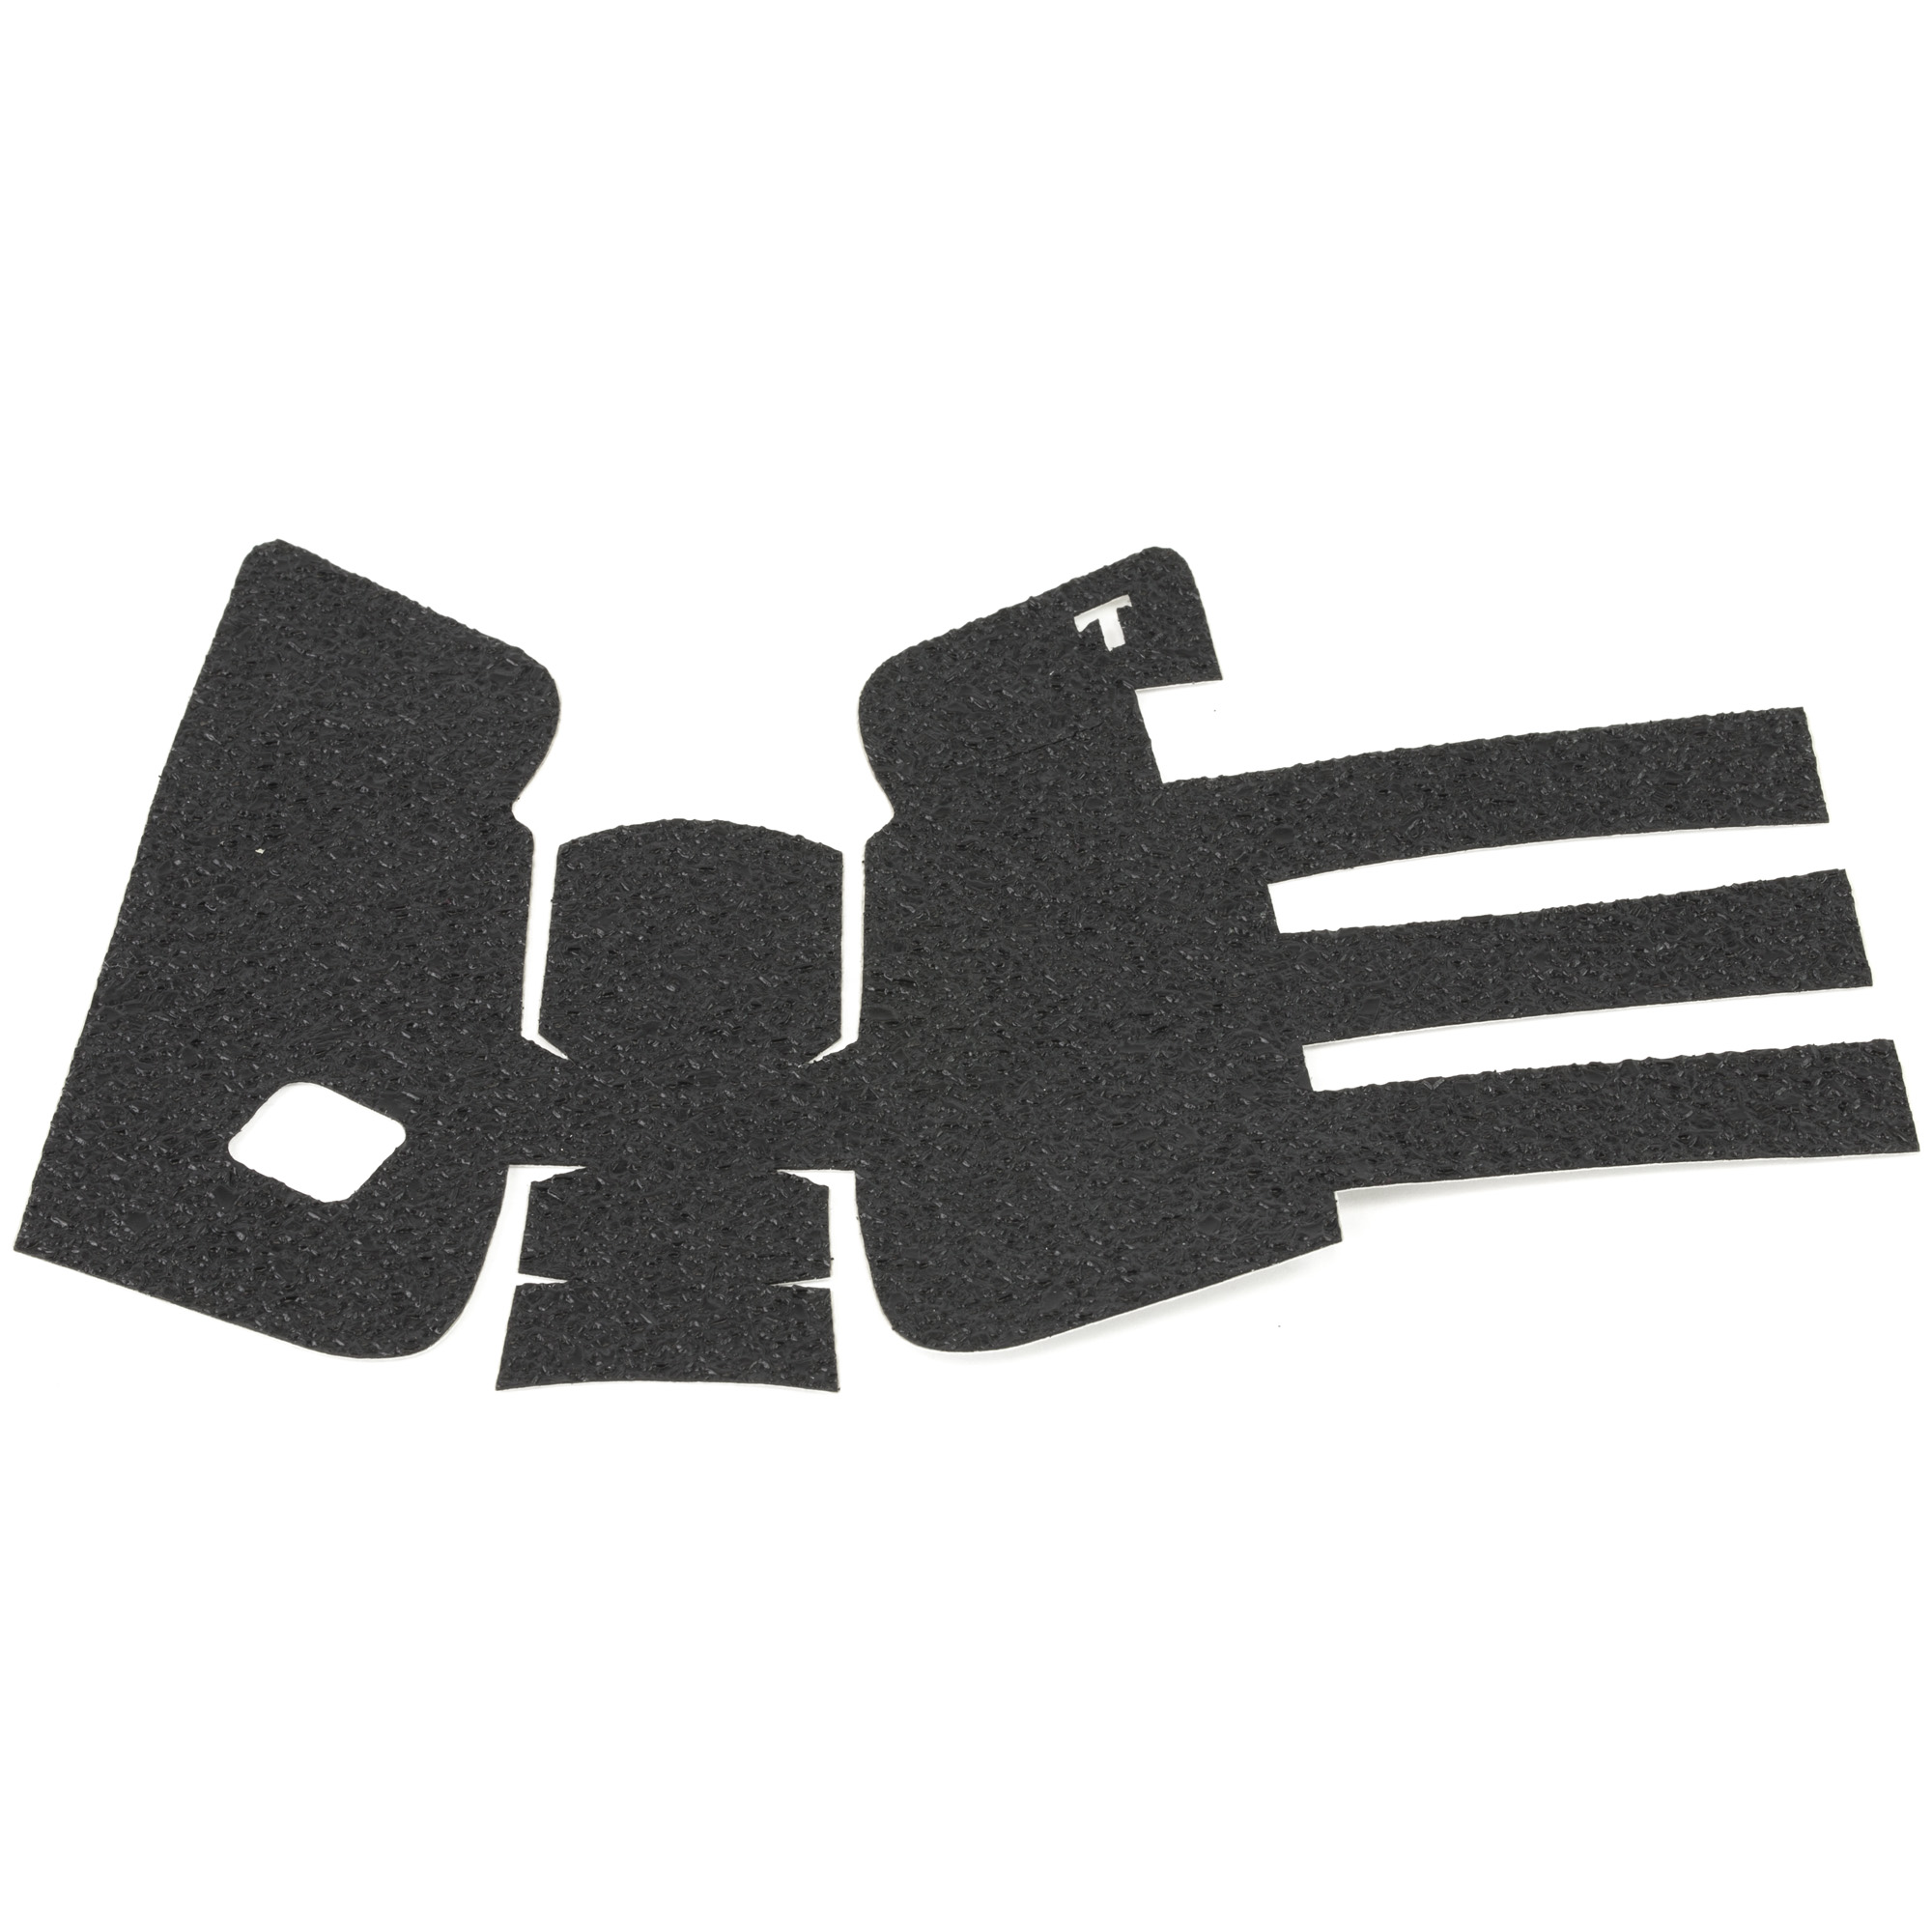 """TALON Grips for Glock Model 19"""" 23"""" 25"""" 32"""" and 38 models Gen 1"""" 2"""" 3. This rear wrap grip is in the rubber texture. This grip provides full coverage on the side panels including above the thumb rest"""" ample coverage on the backstrap"""" and three finger wraps for the finger groves under the trigger guard. This grip has a logo cutout for the Glock emblem on the left side of the handle. This grip sticks extremely well even with the Rough Textured Frame (RTF)."""